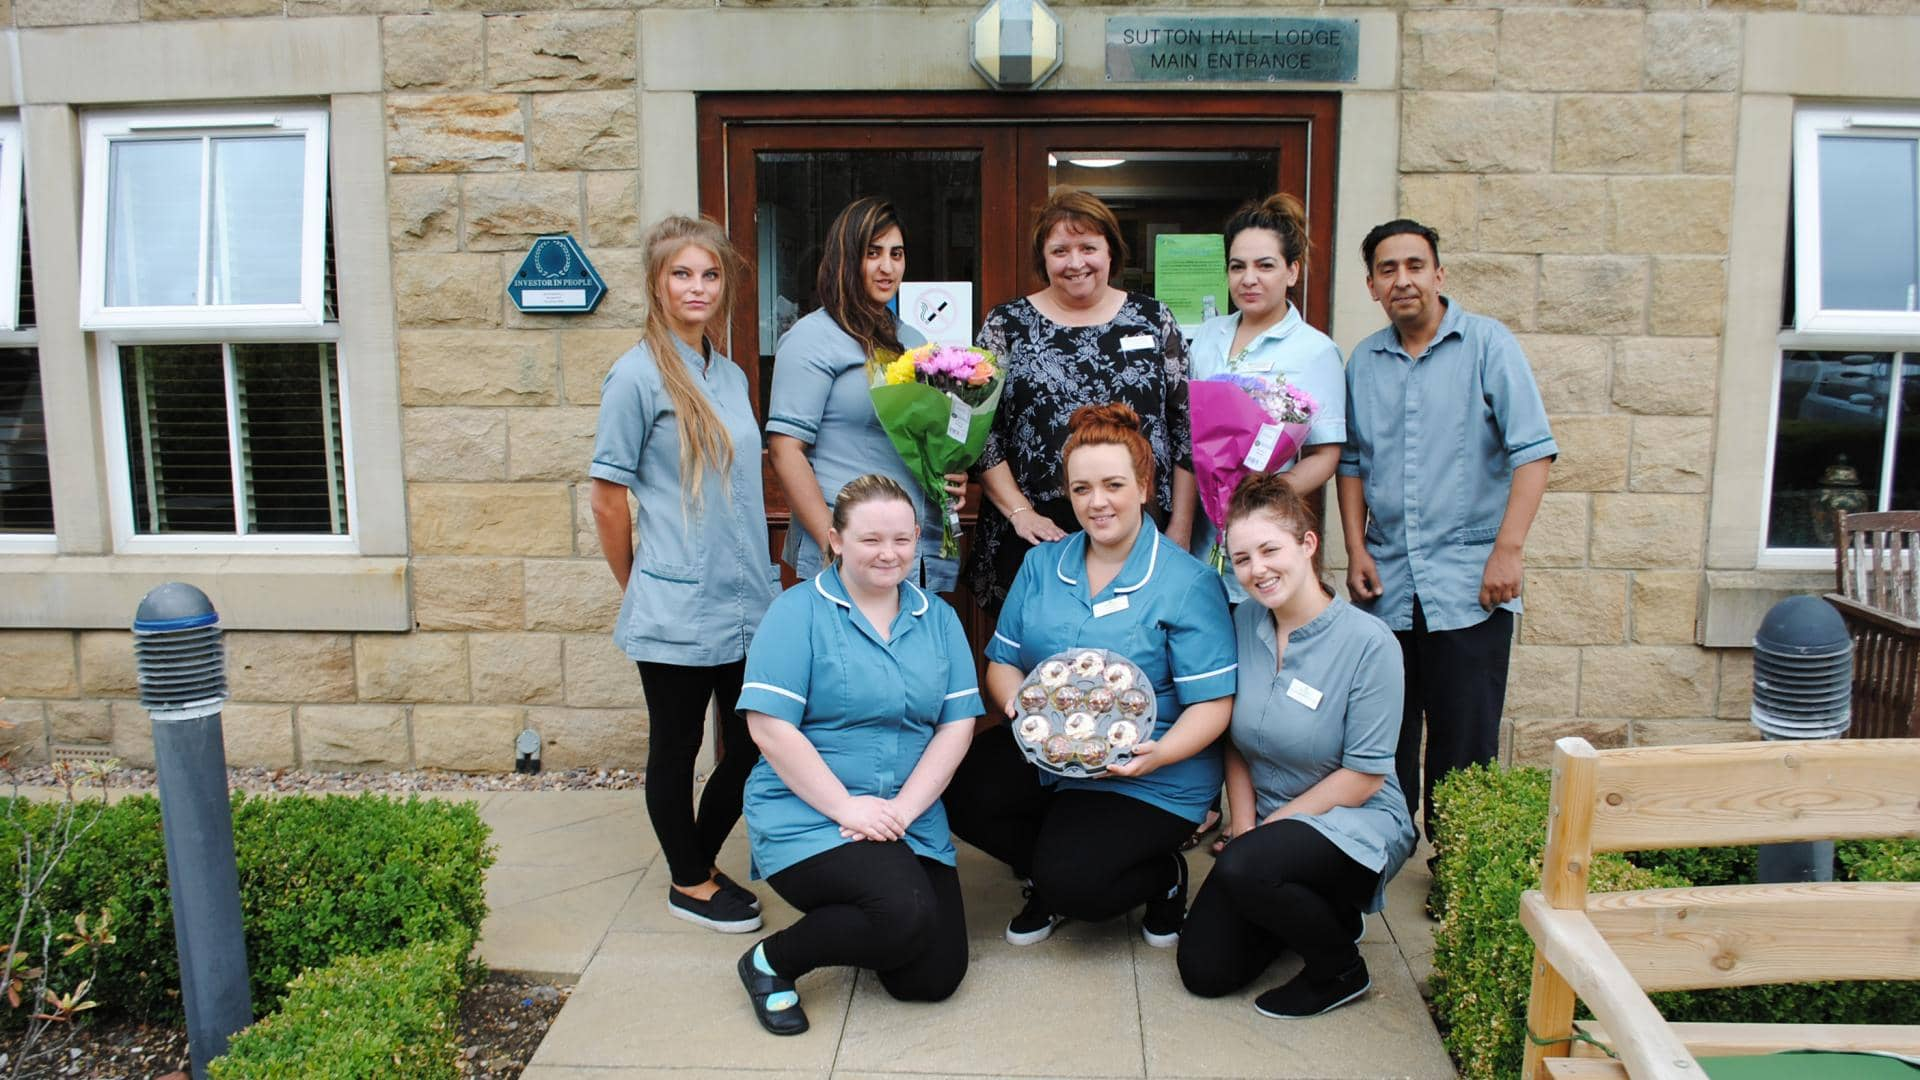 Care home sutton in craven